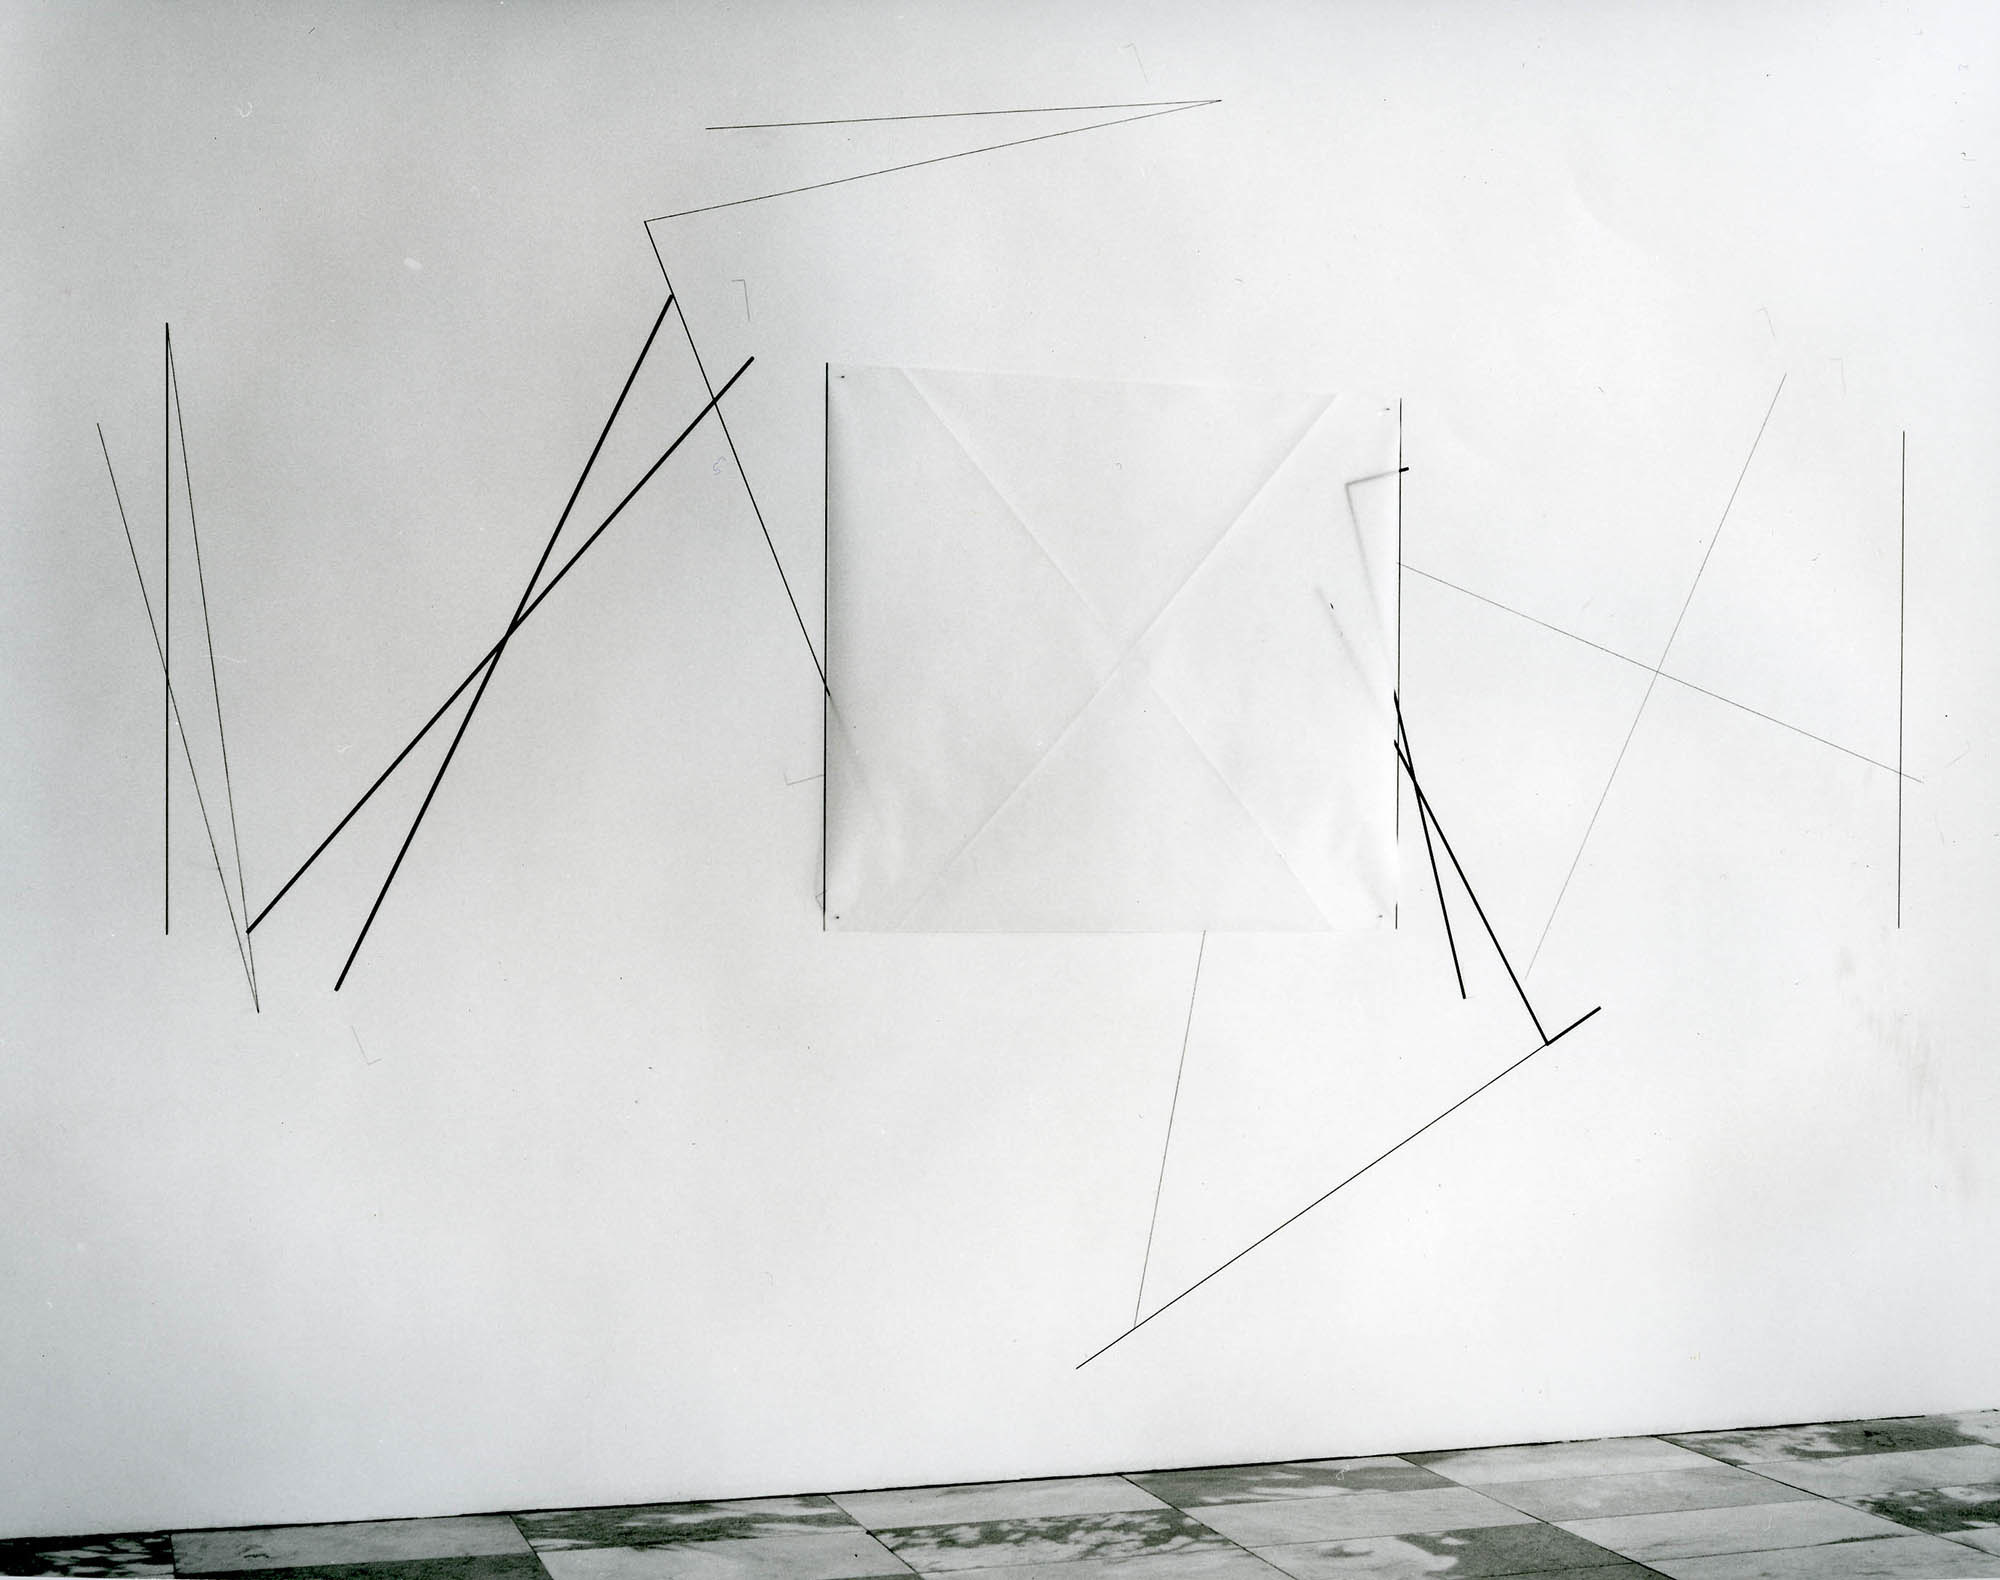 Installation view, Dorothea Rockburne: Drawing Which Makes Itself, Museum of Modern Art. Clockwise from left, on the walls and floor: Drawing Which Makes Itself: Hartford Installation, 1973, Nesting, 1972, Neighbourhood, 1973, Arc, 1973, Diamond–Paralellogram Overlapping, 1973. Digital Image © 2013 The Museum of Modern Art, New York.